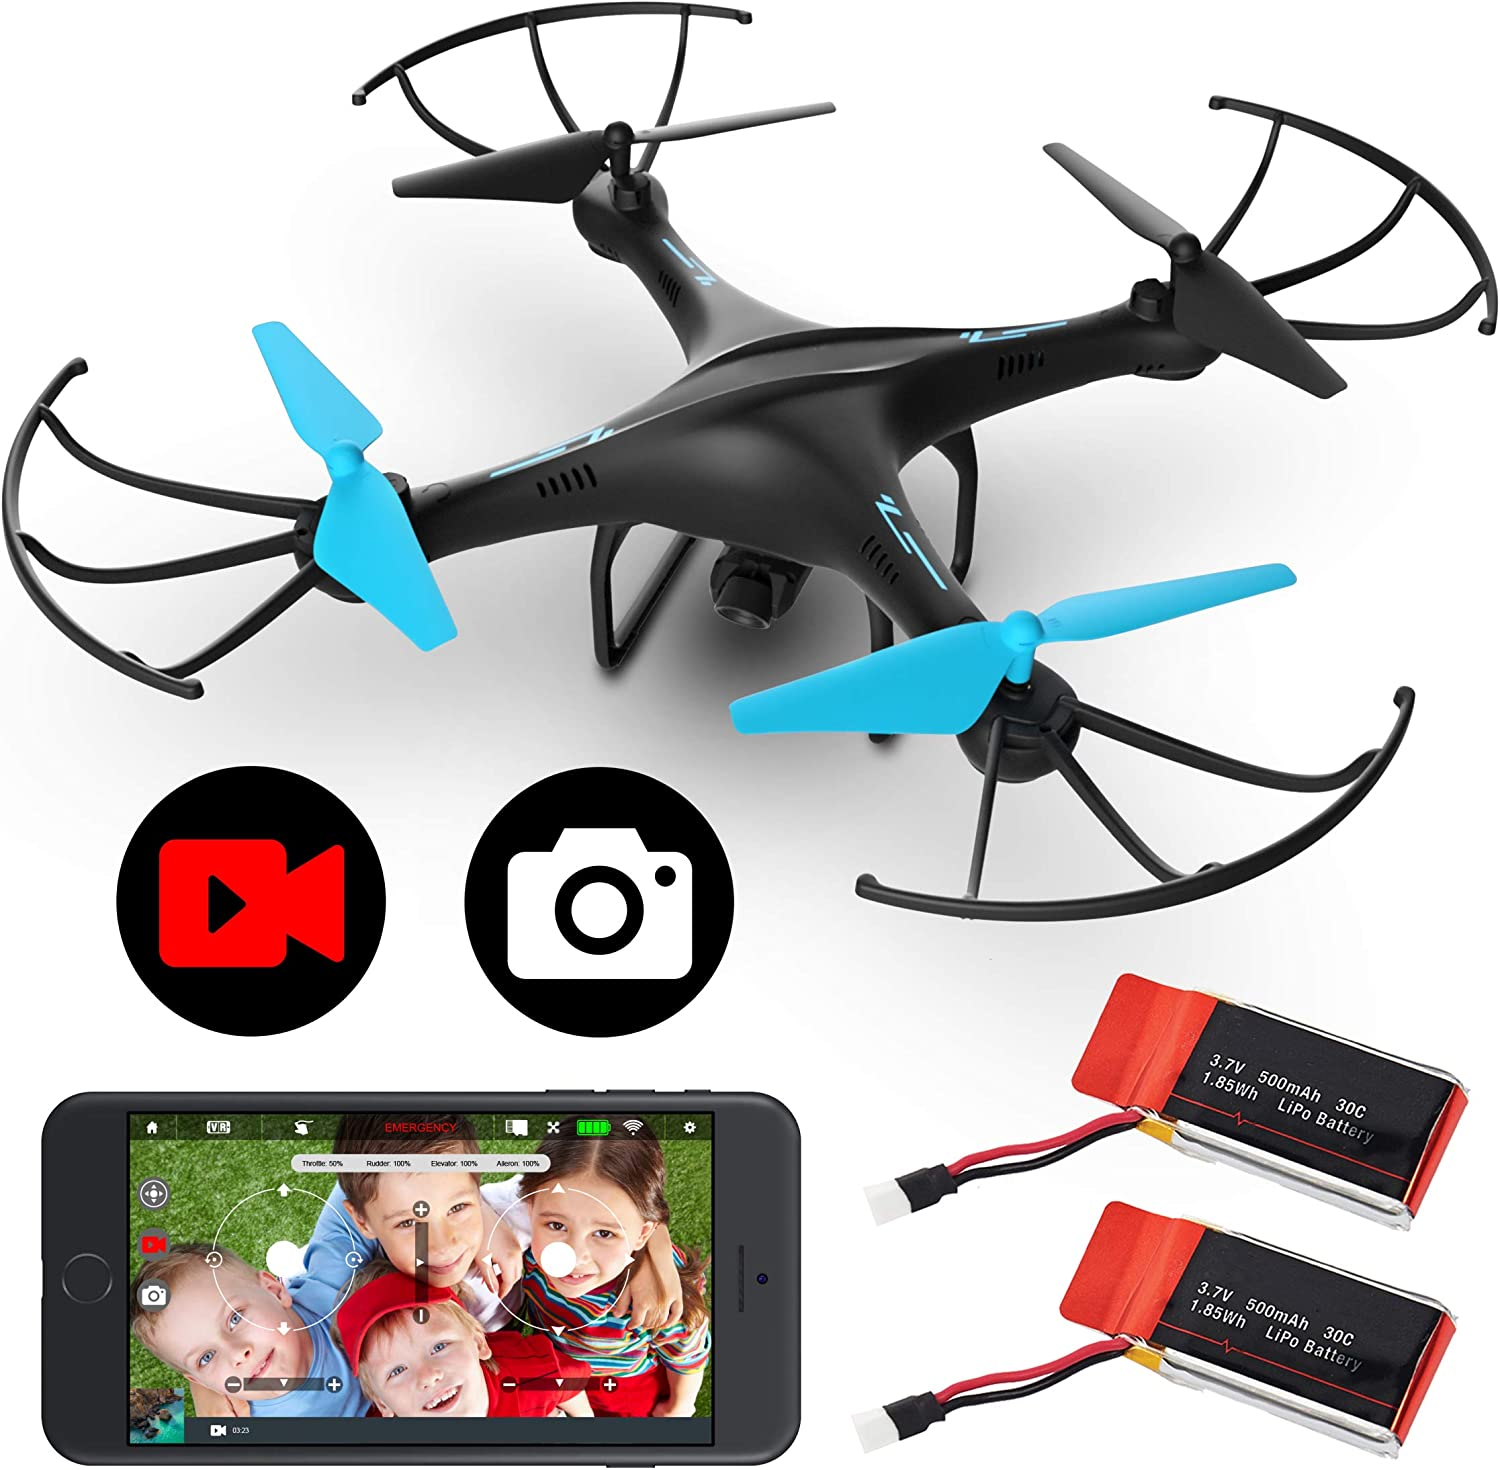 Force1 U45WF is at #1 for best drones under 50 dollars